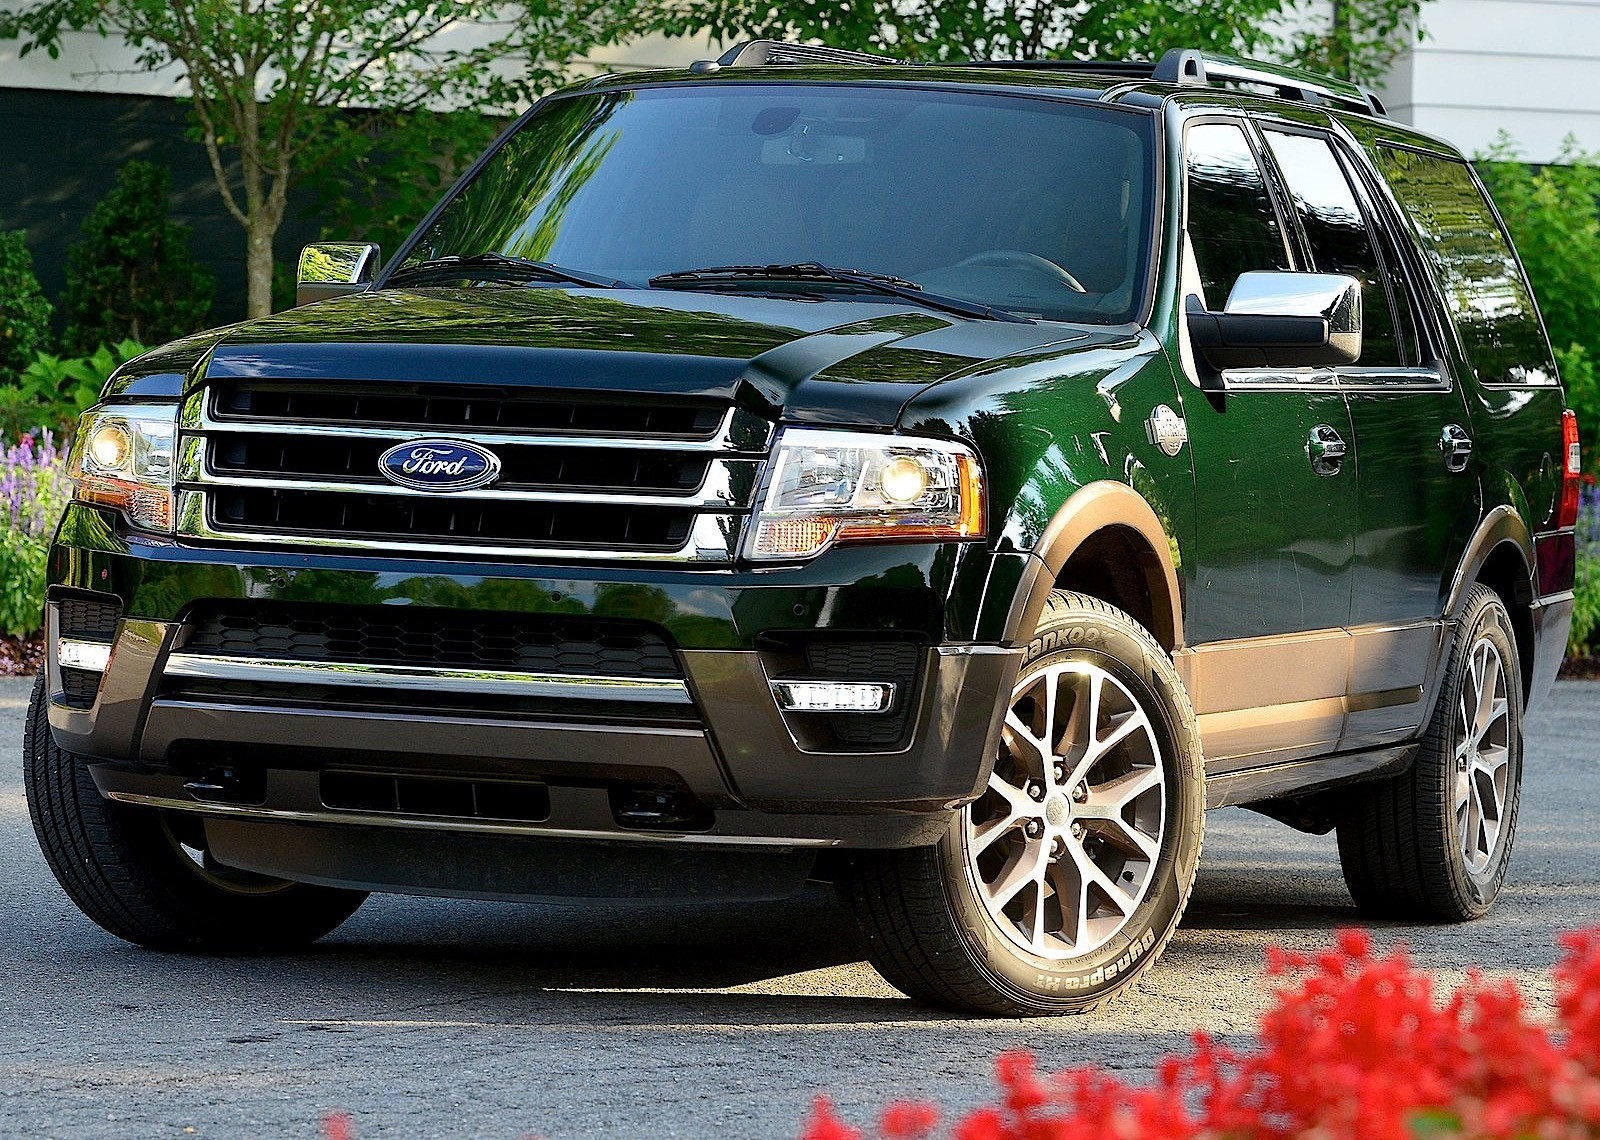 Ford Expedition El >> FORD Expedition - 2014, 2015, 2016, 2017 - autoevolution